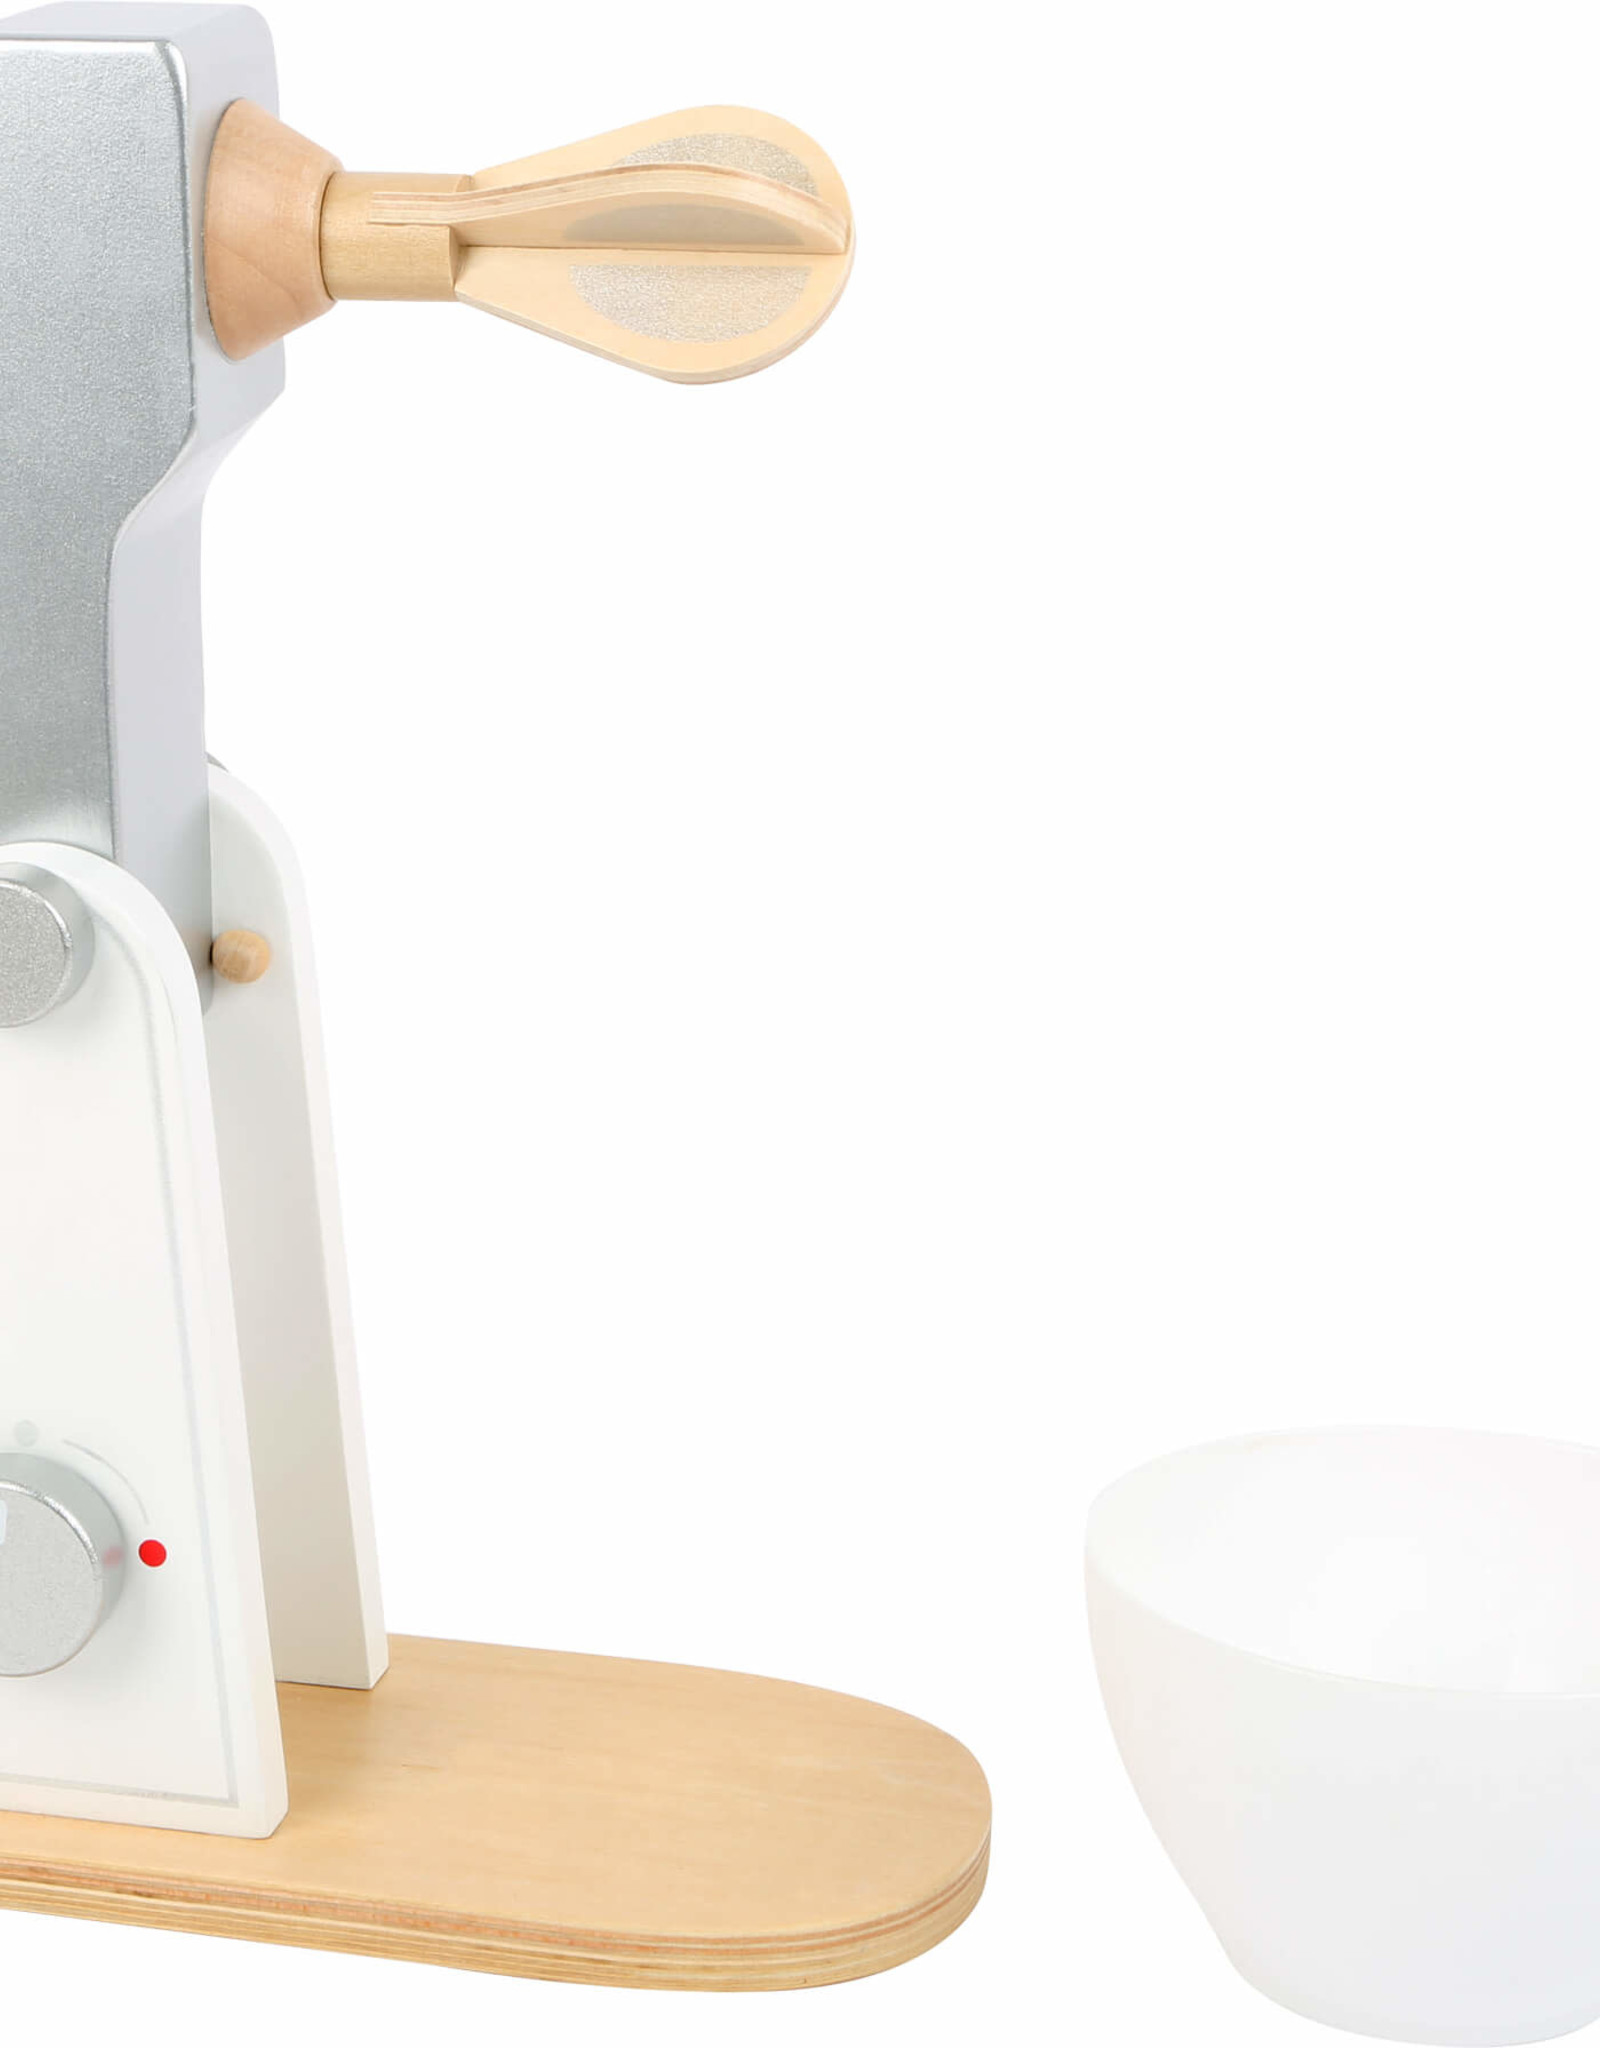 Small Foot Mixer for Play Kitchen